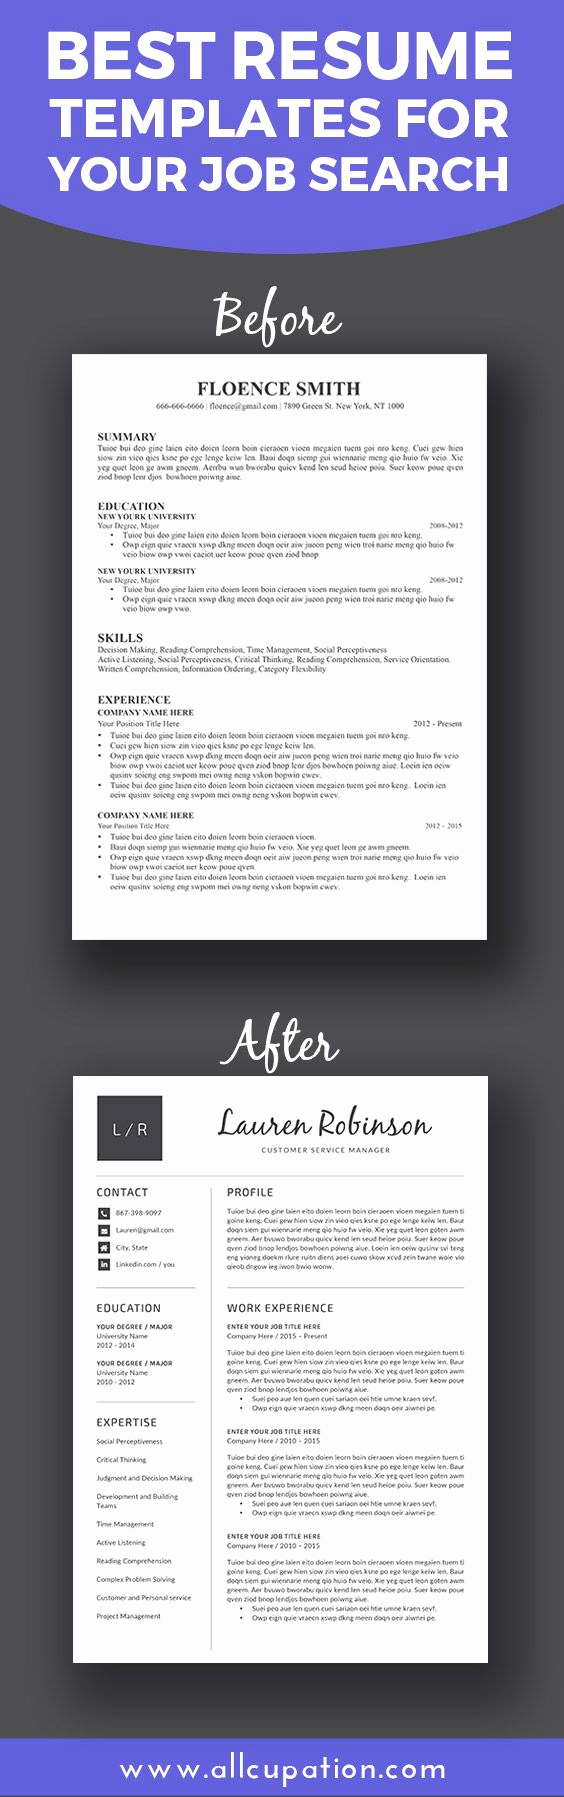 Job Posting Template Word New Best 25 Best Resume Template Ideas On Pinterest